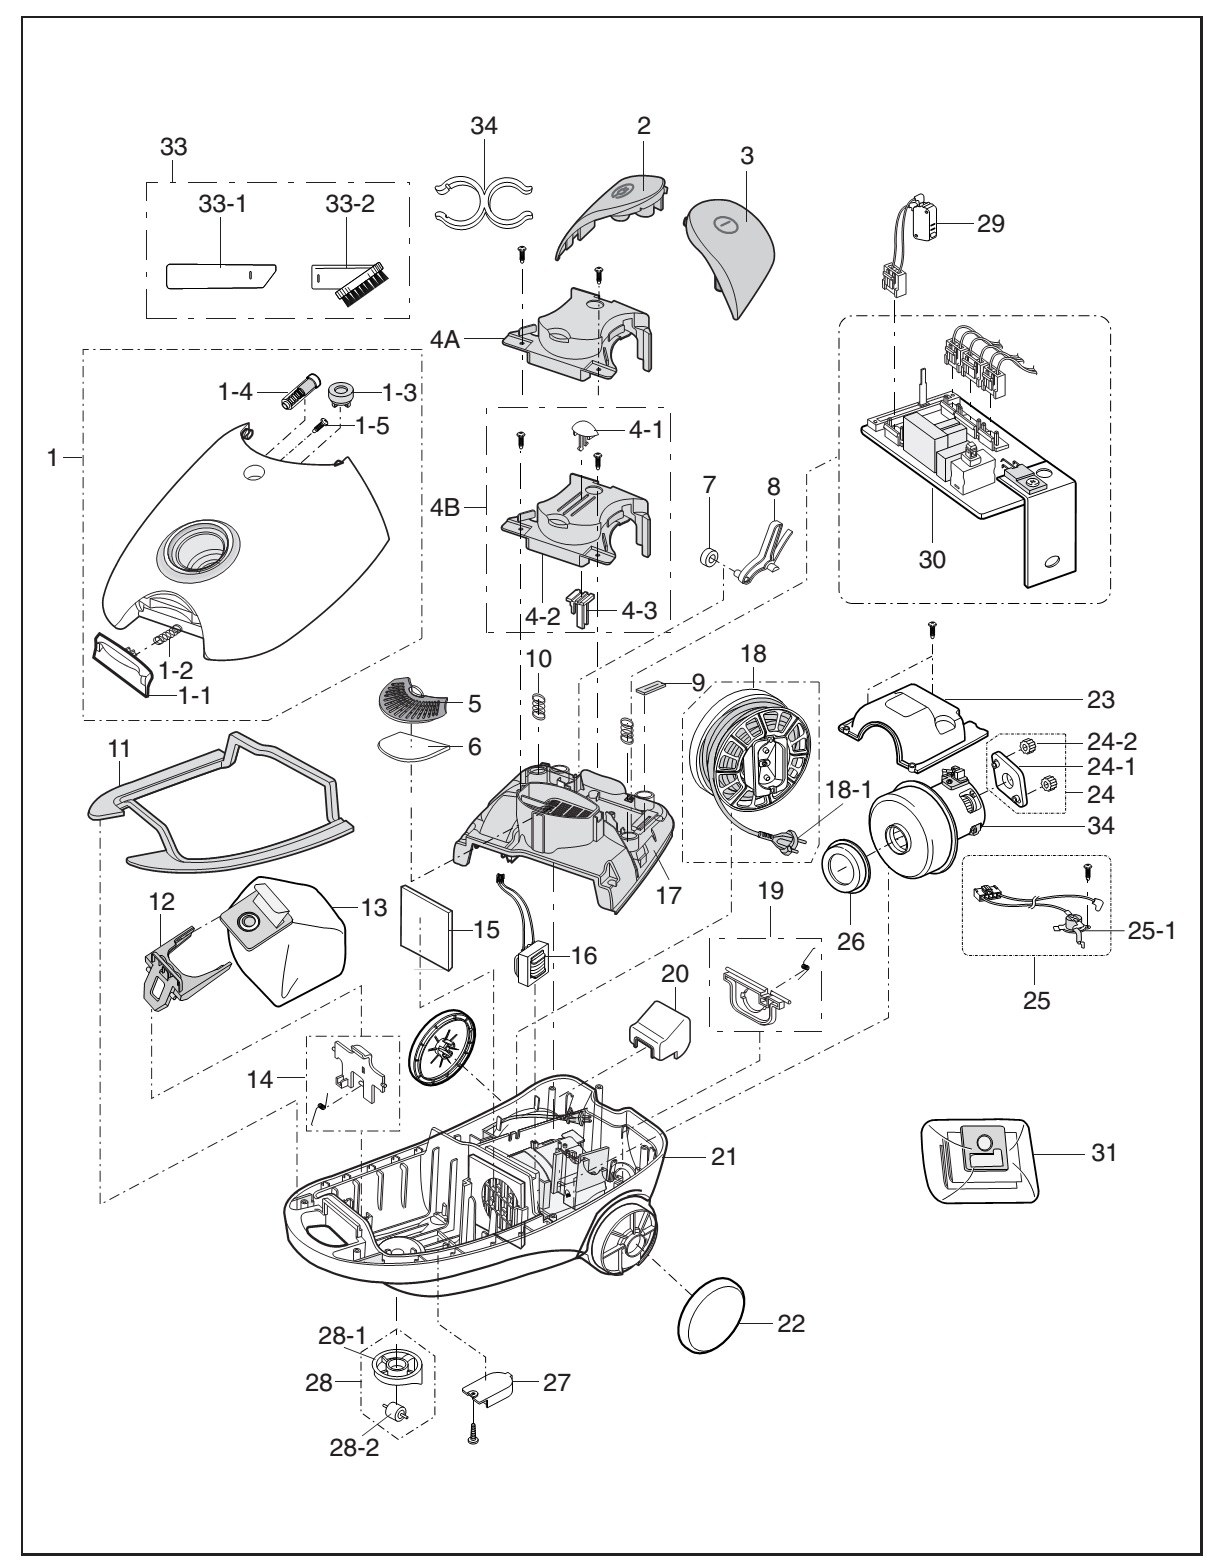 How To Disassemble Samsung Vc Vacuum Cleaner